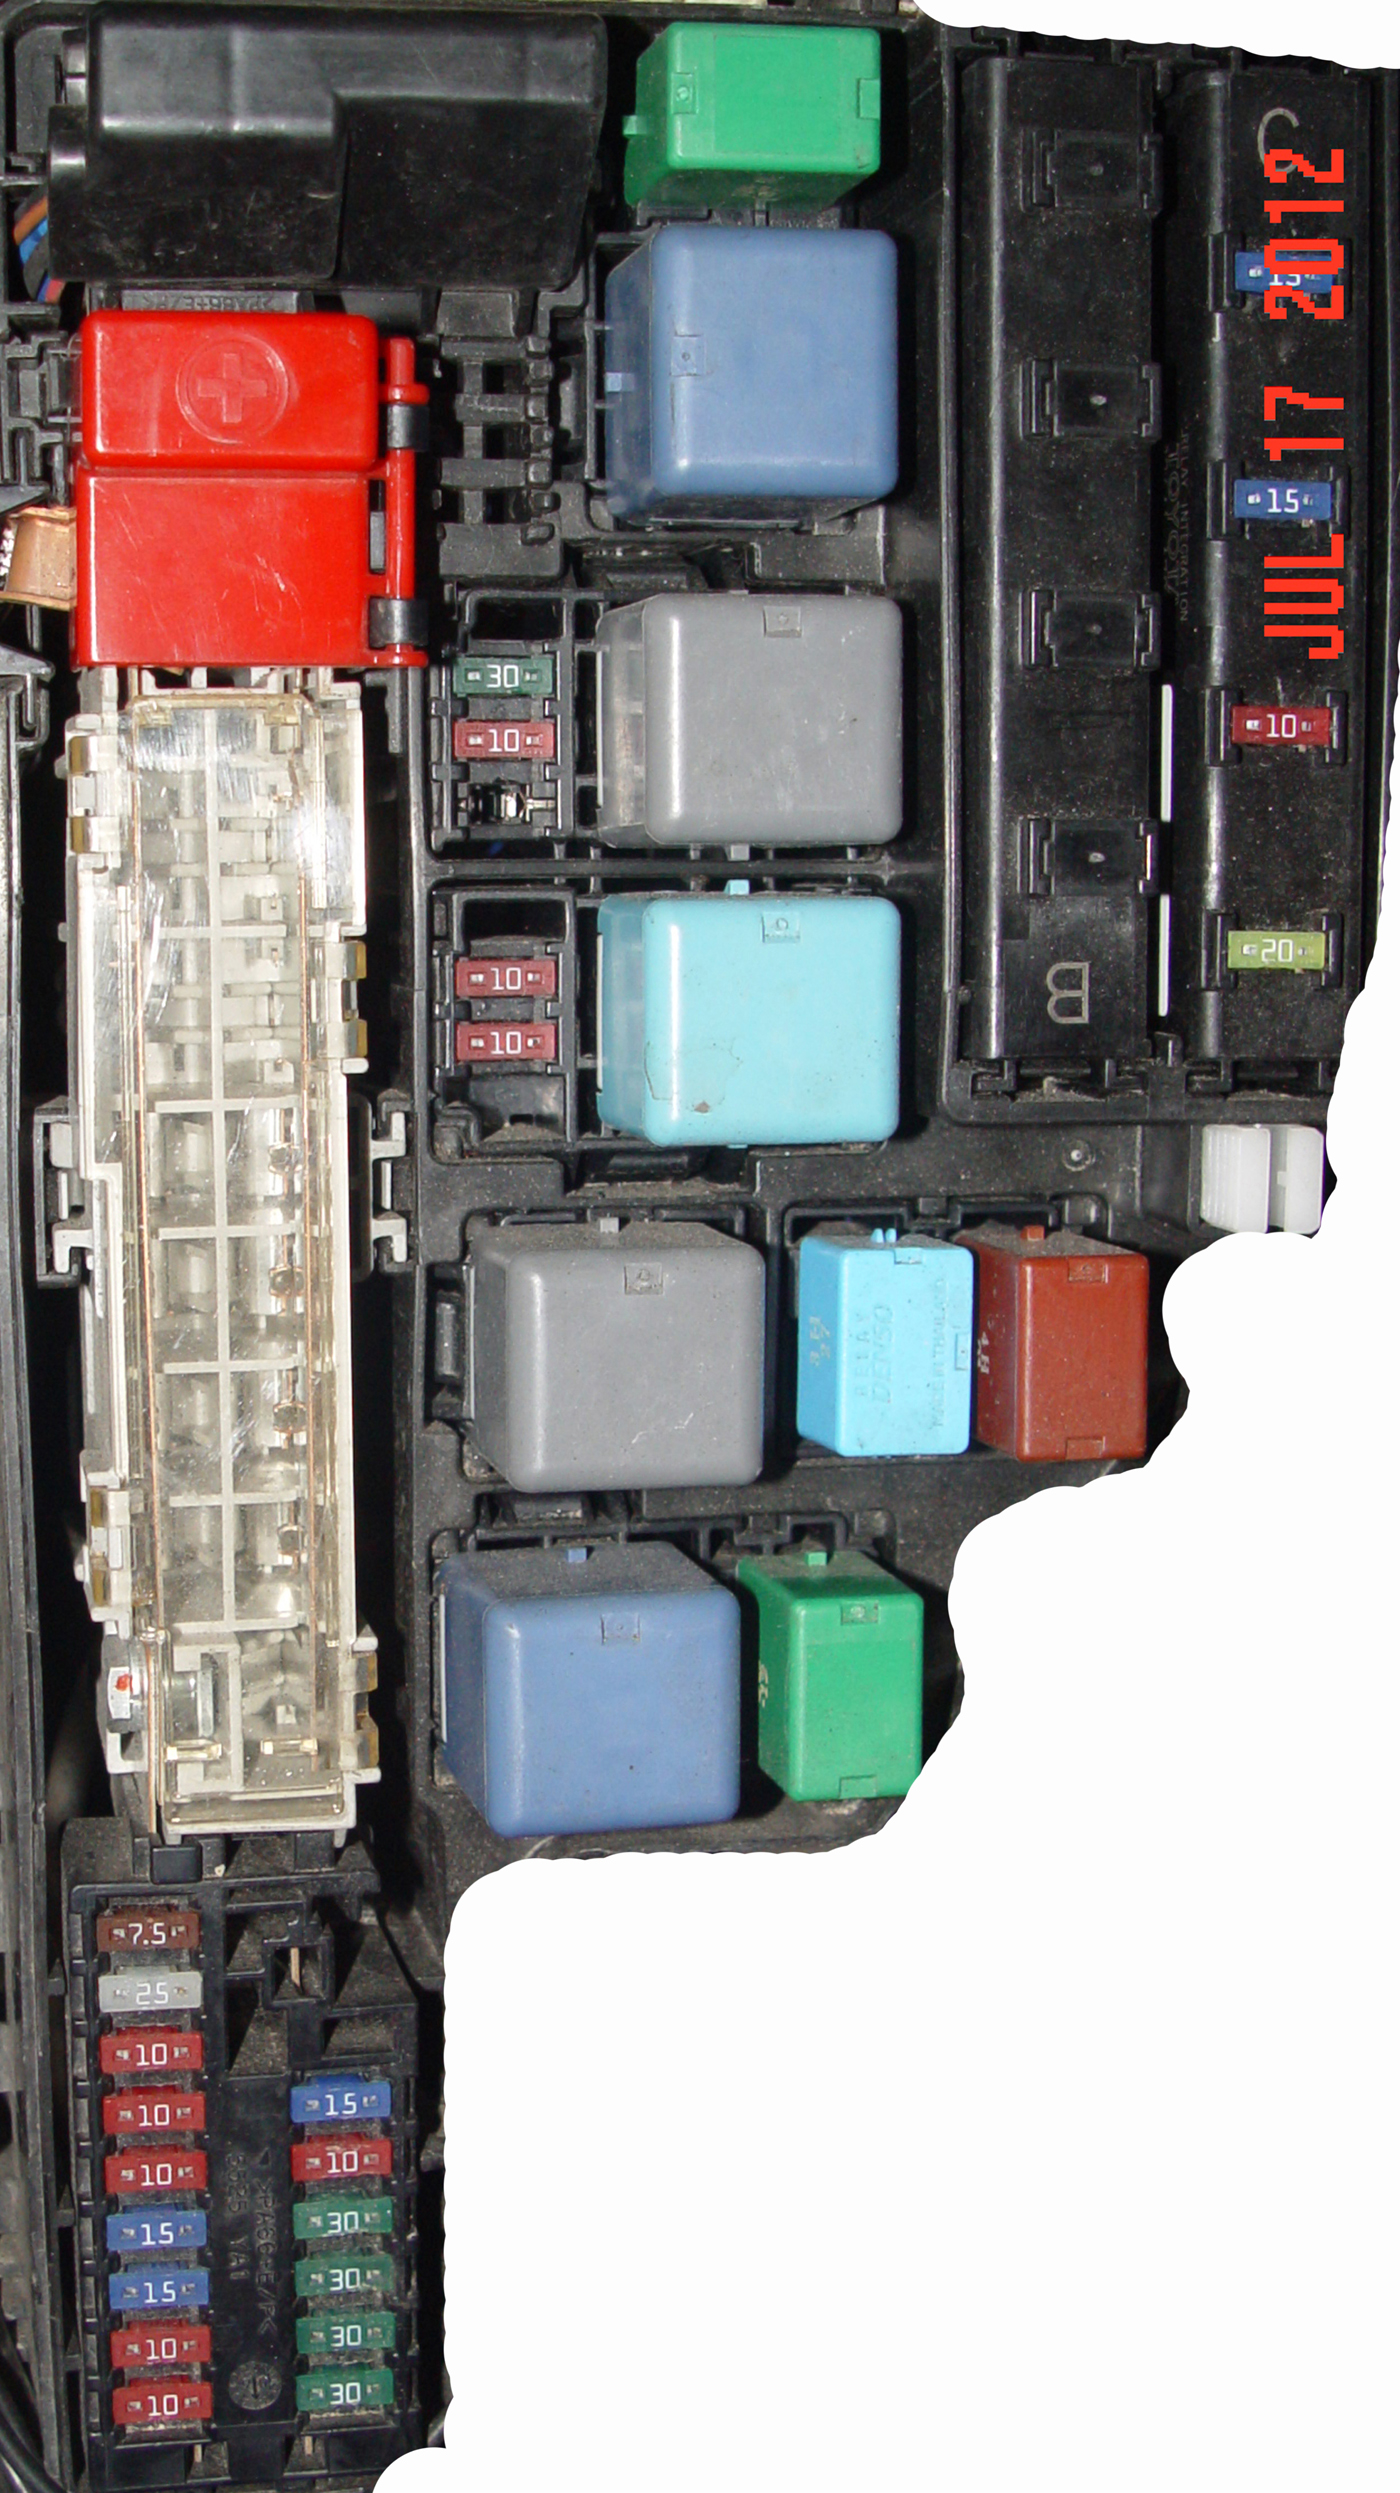 2004 toyota prius fuse box diagram iirGtIL 2008 toyota prius fuse box 2007 toyota prius fuse box \u2022 free access to 2010 prius fuse box at sewacar.co